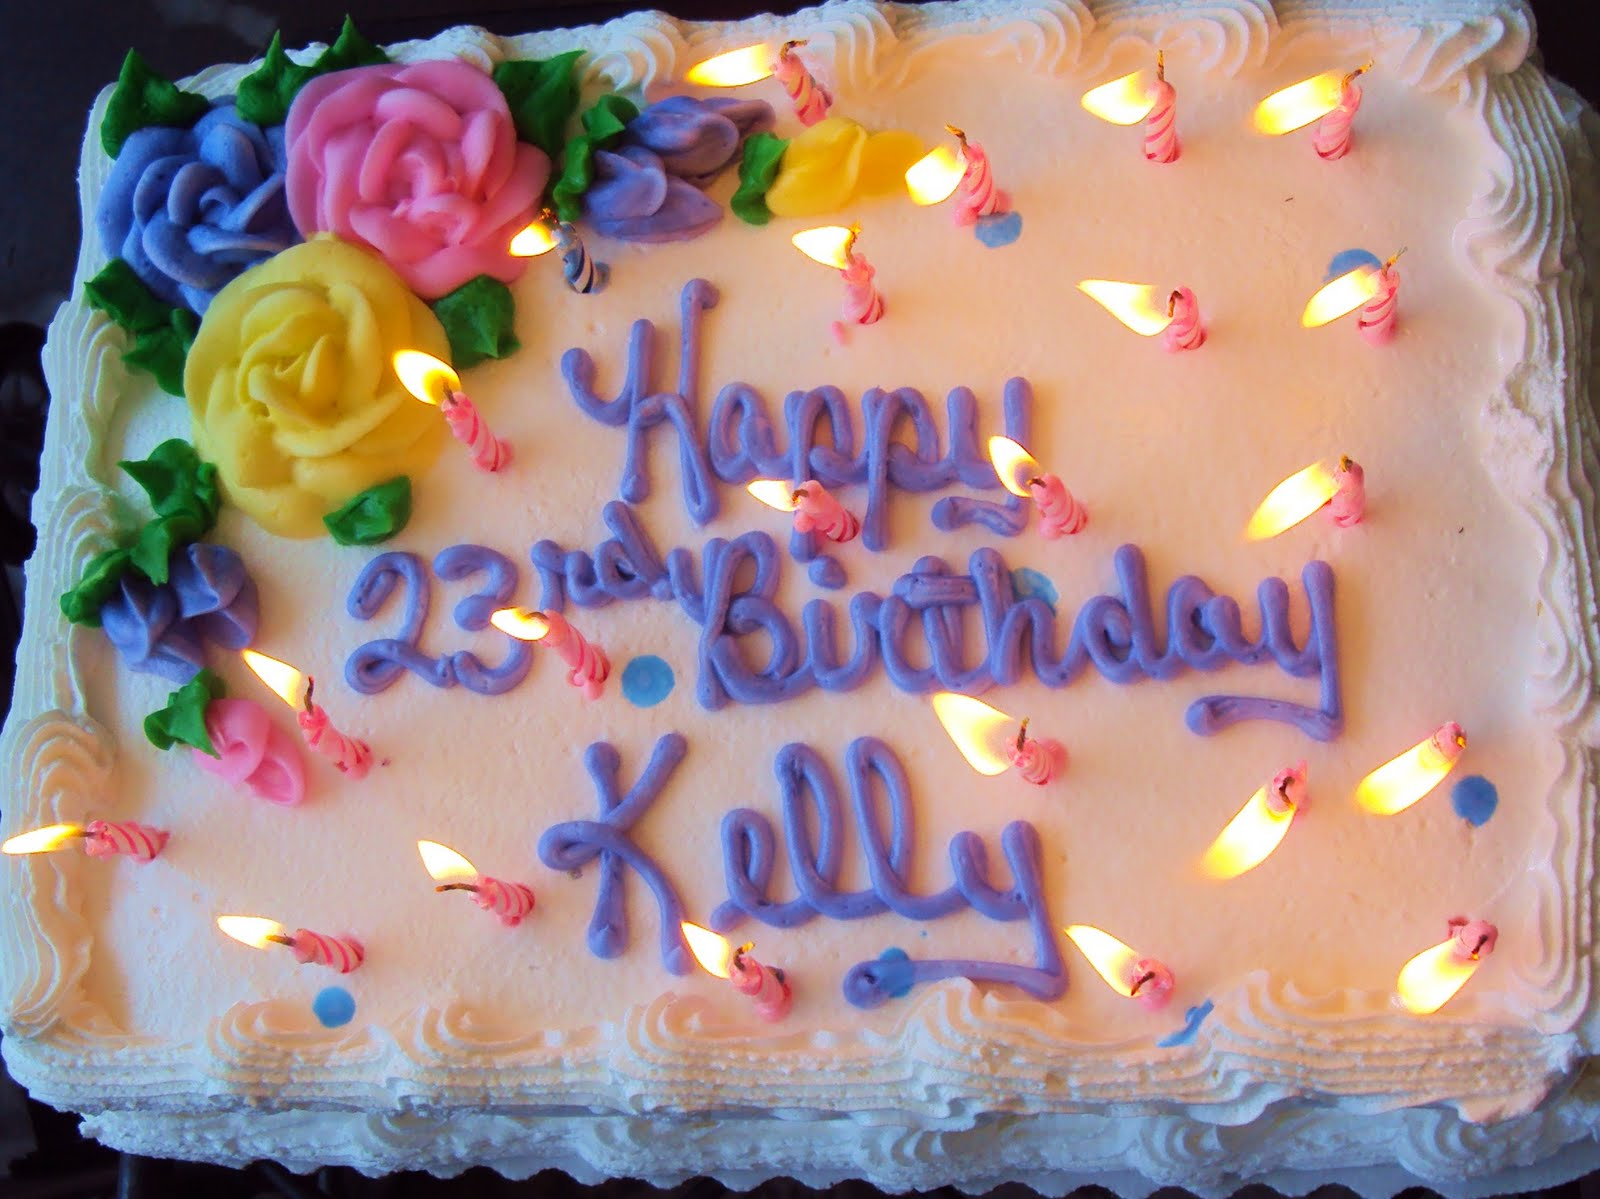 Sweet Serendipity Happy Birthday Kelly